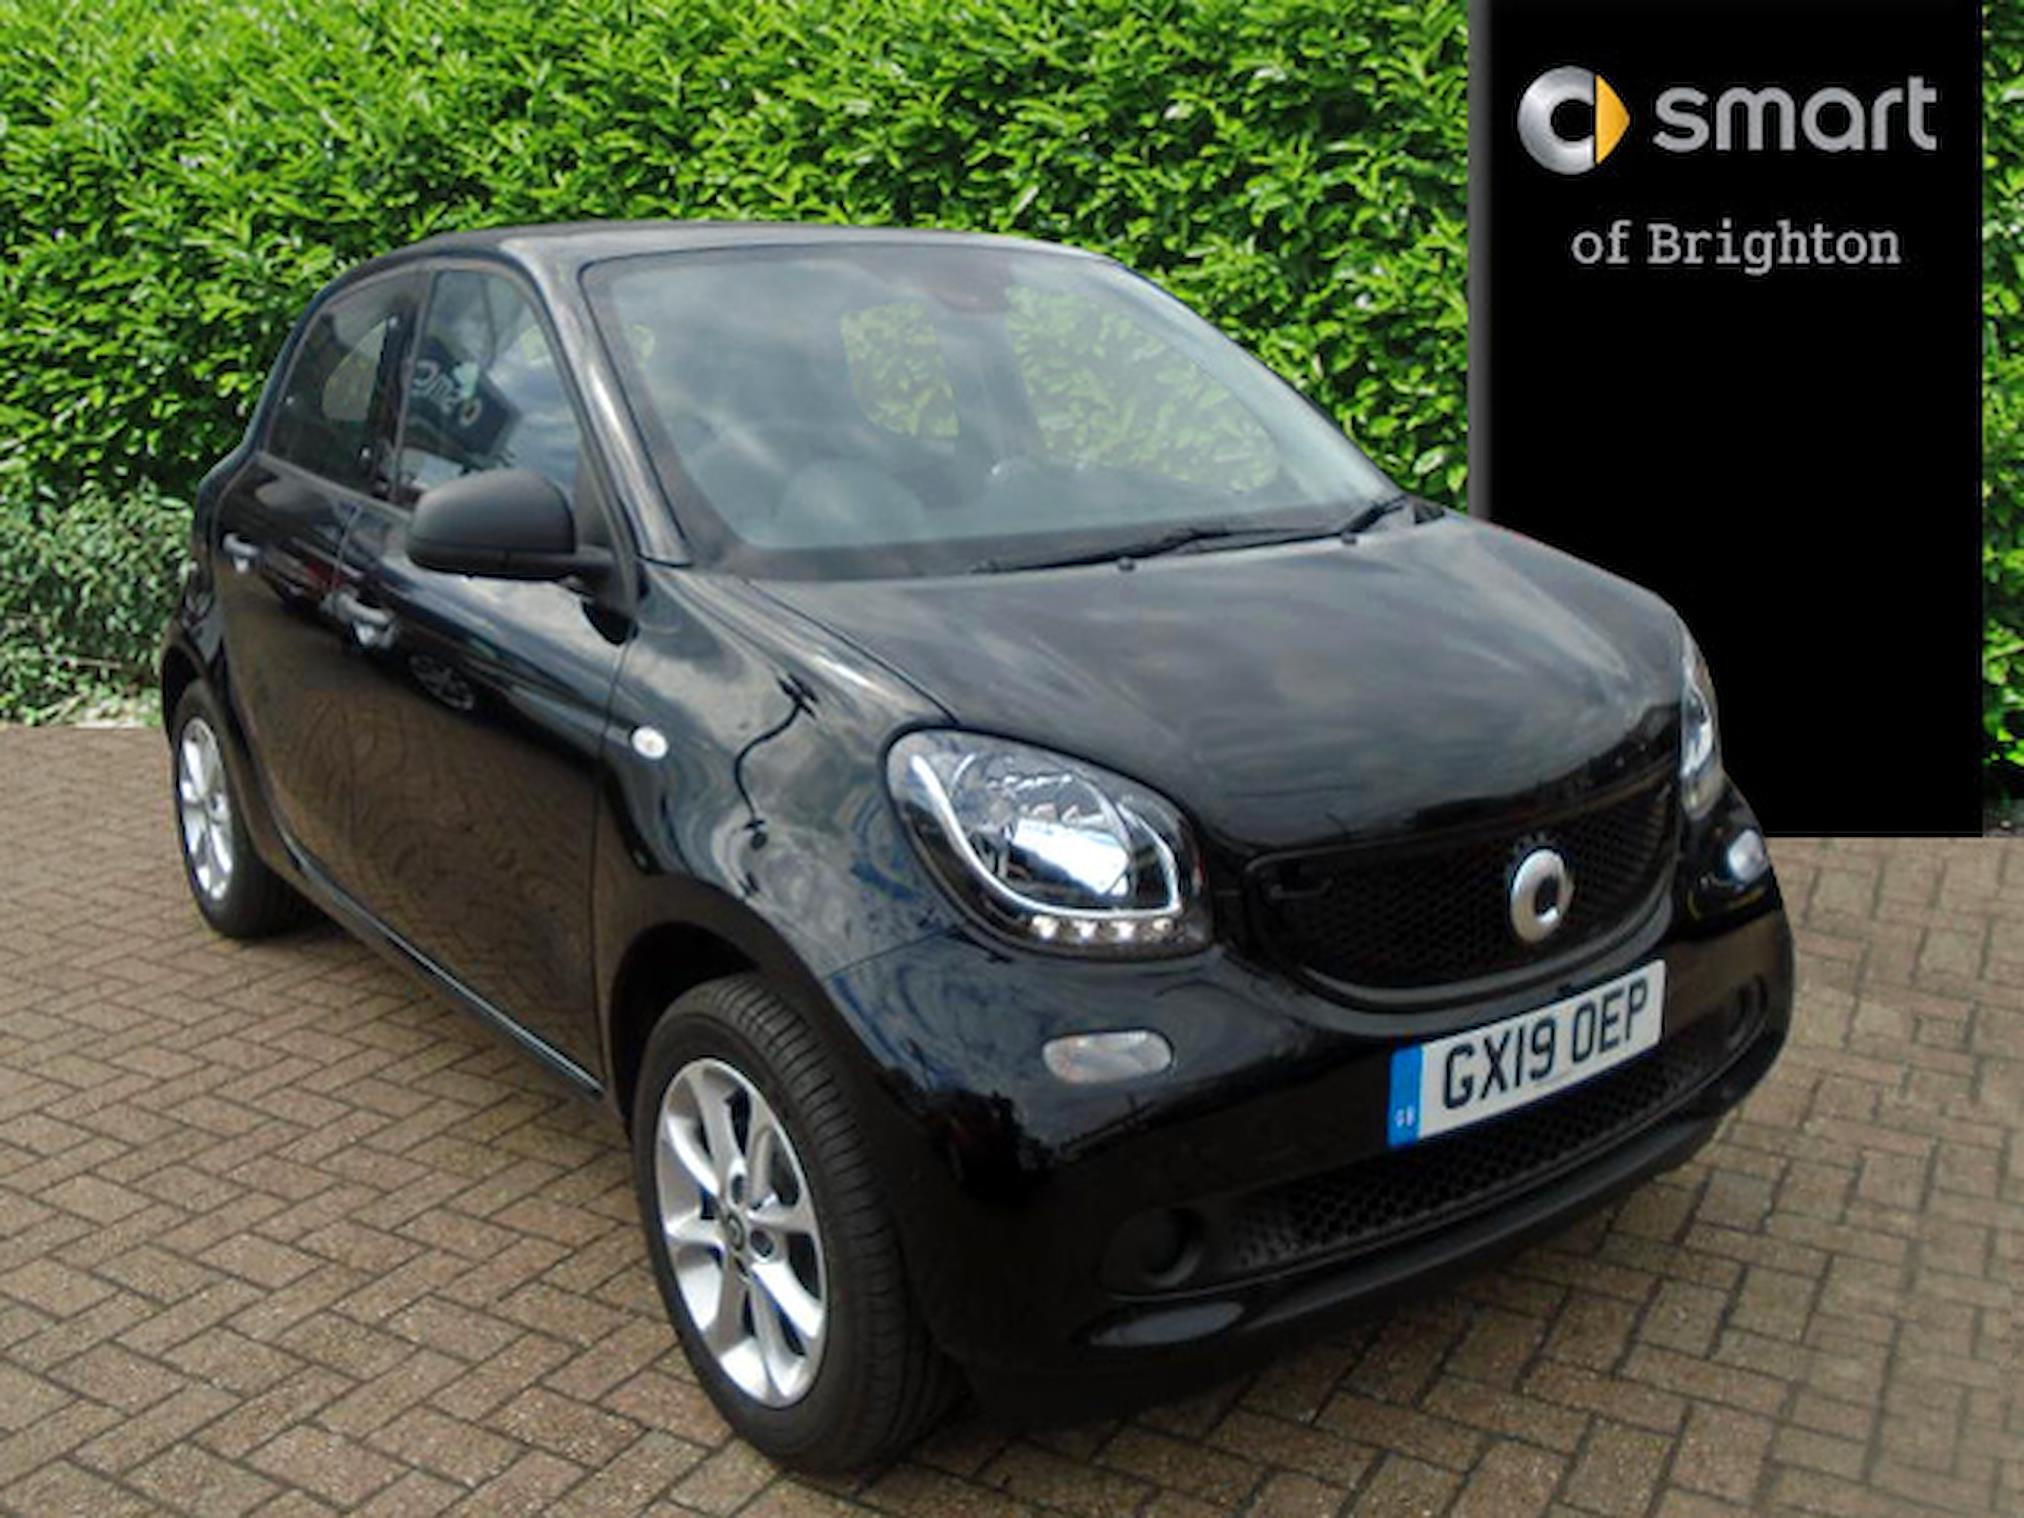 Nearly New FORFOUR HATCHBACK SMART 0 9 Turbo Passion 5Dr Auto 2019